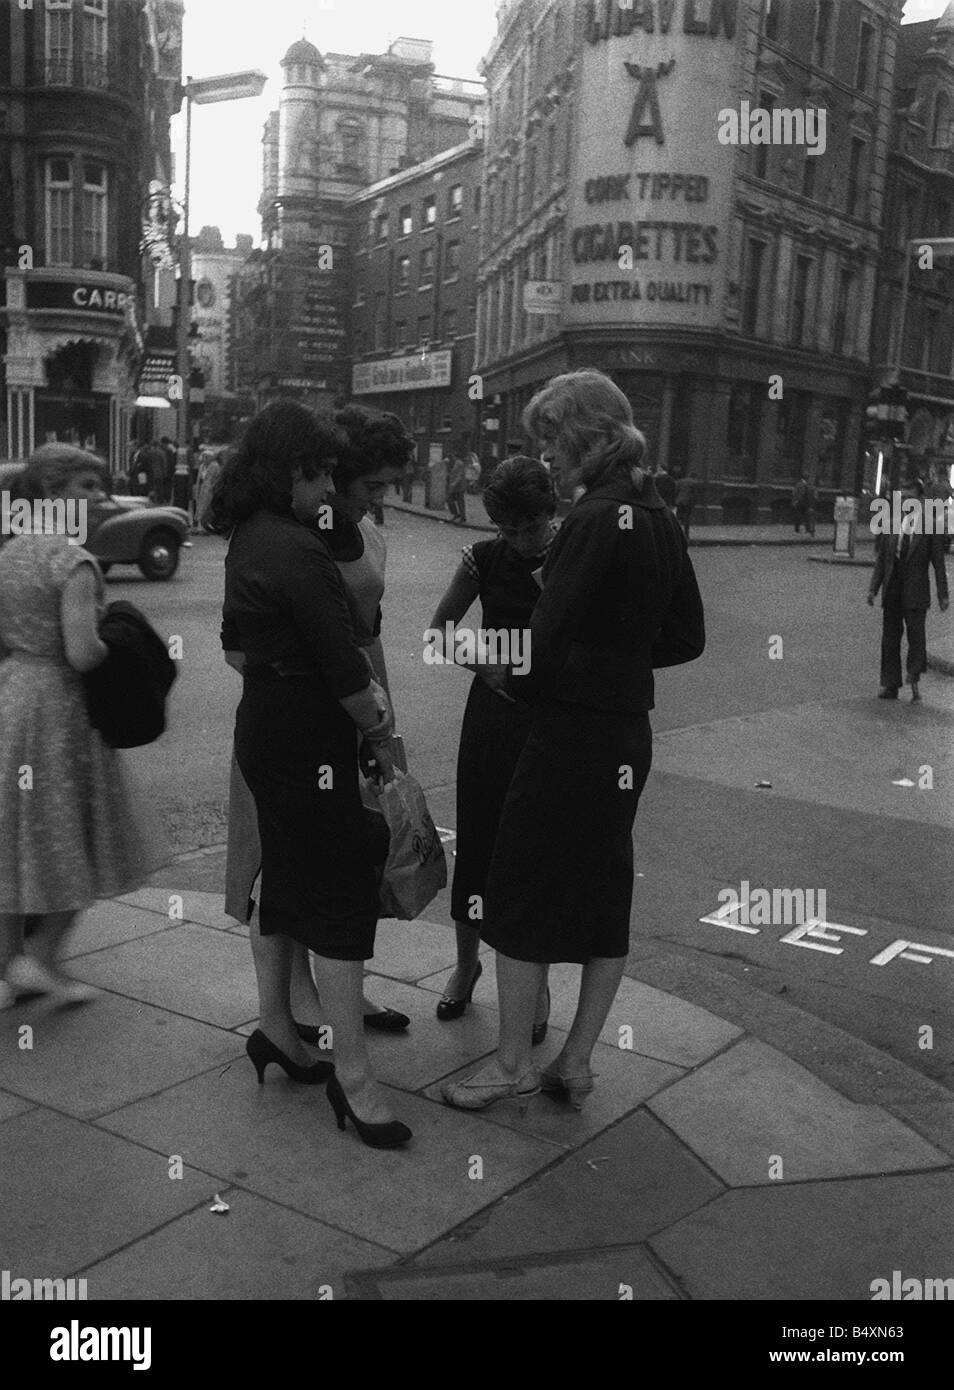 Youth fashion 1957 London A new outfit a new discussion point The sixties saw London labelled as City of the Decade - Stock Image